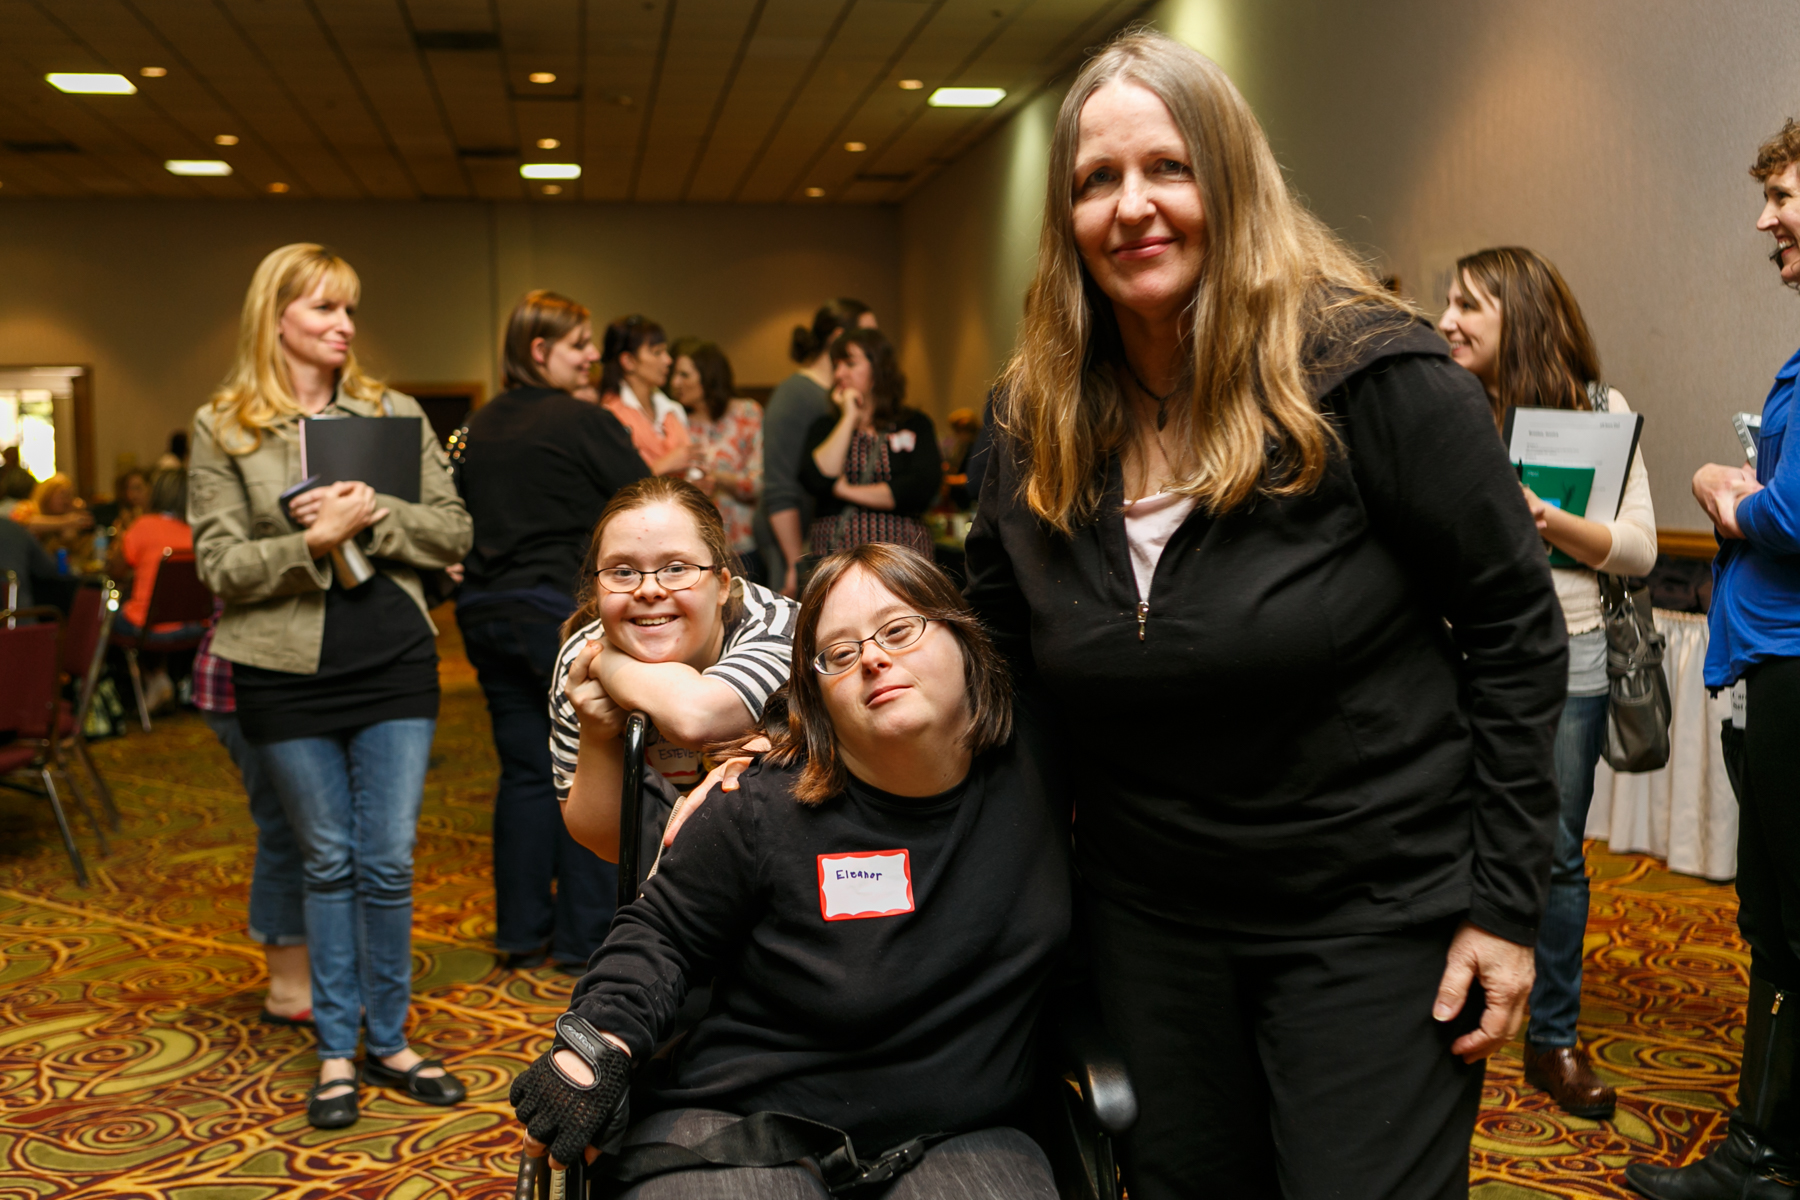 Three women pose for the camera in a crowded conference room. Two appear to have Down Syndrome; one is in a wheelchair.